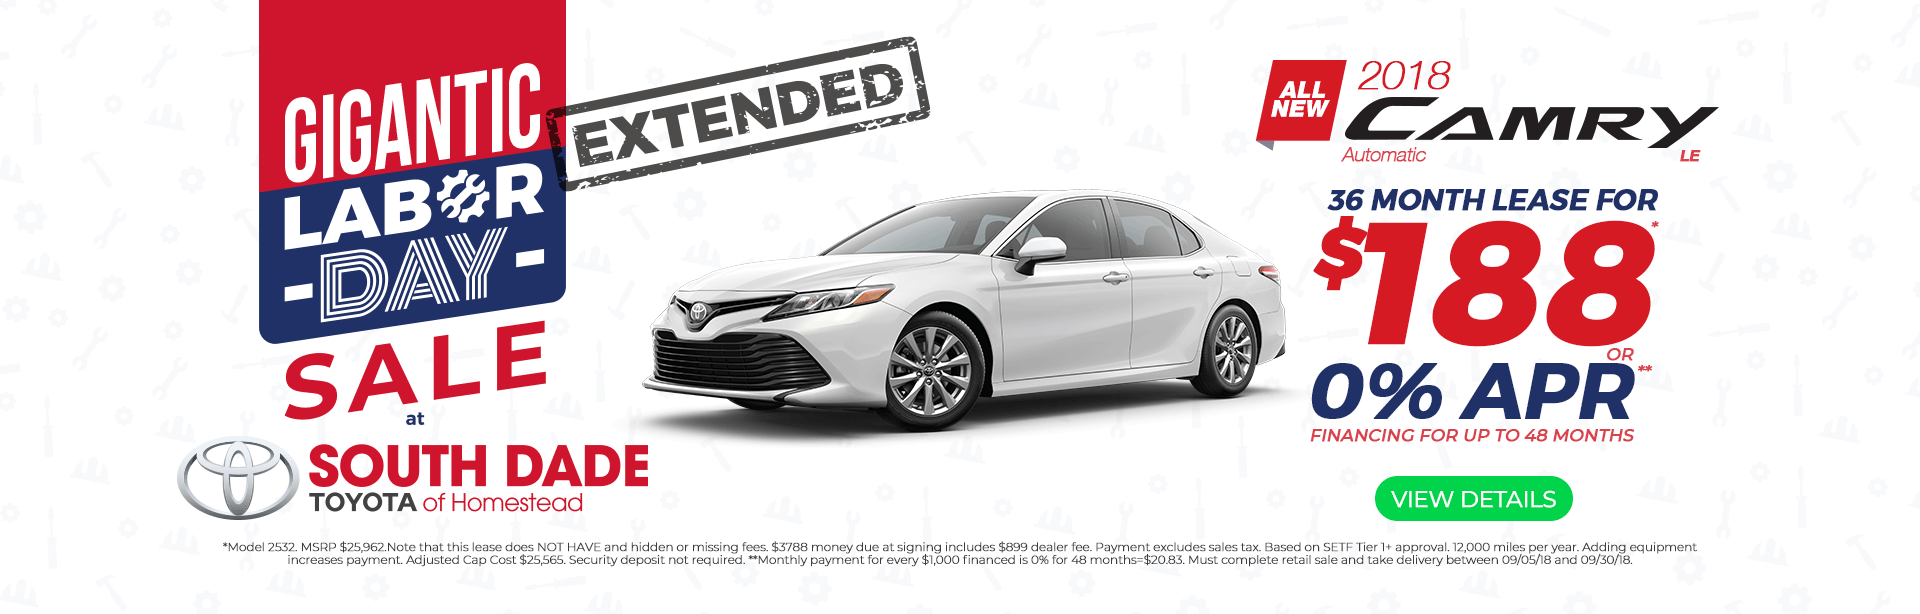 2018 Camry Aug Offer